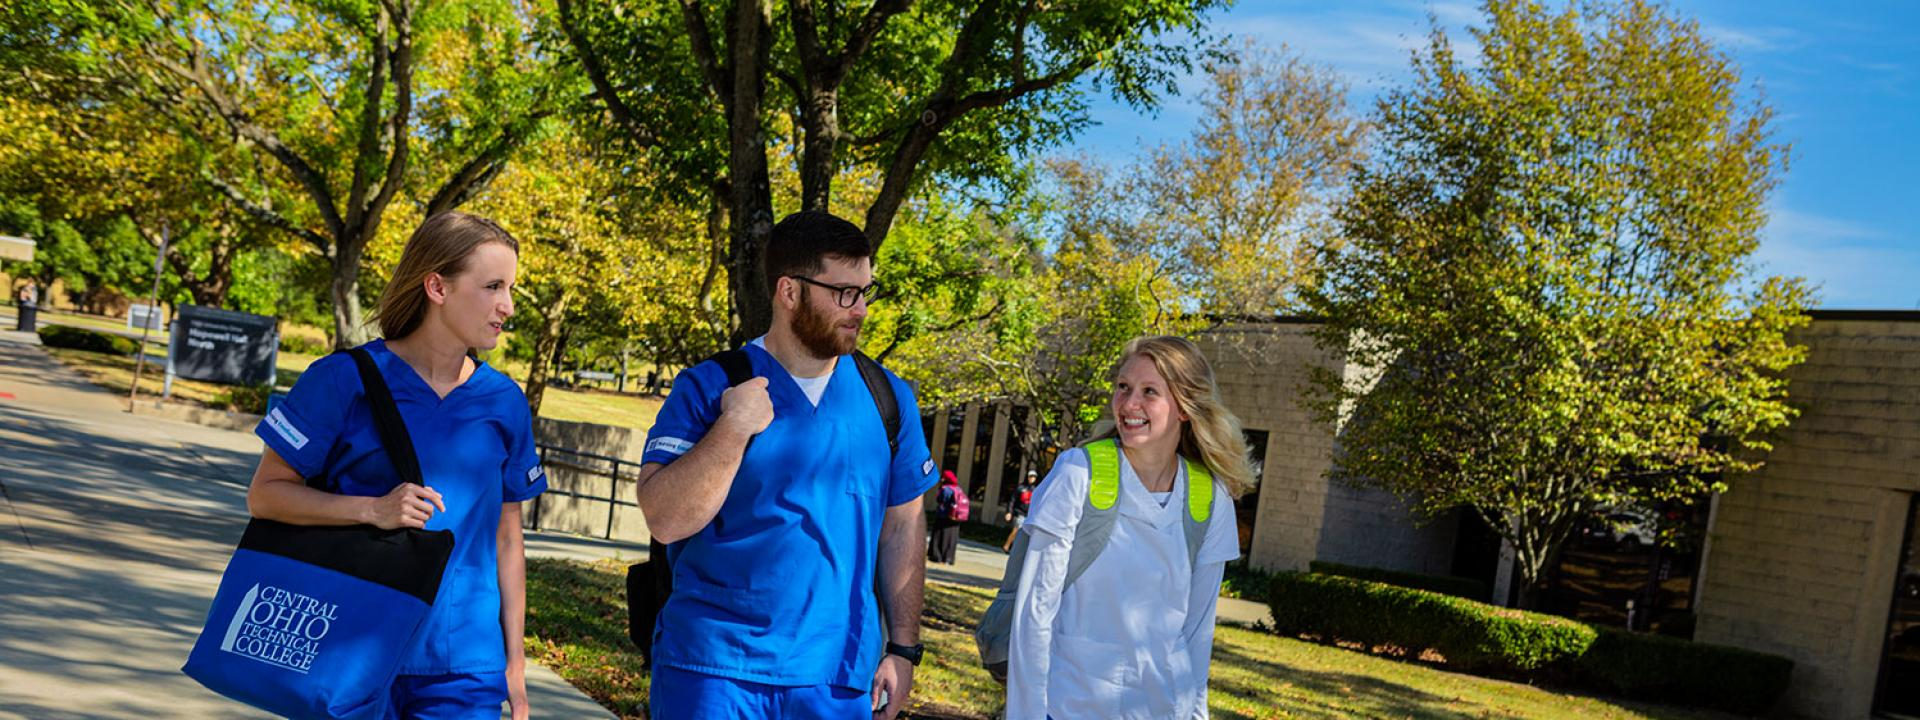 COTC Nursing Students Walking